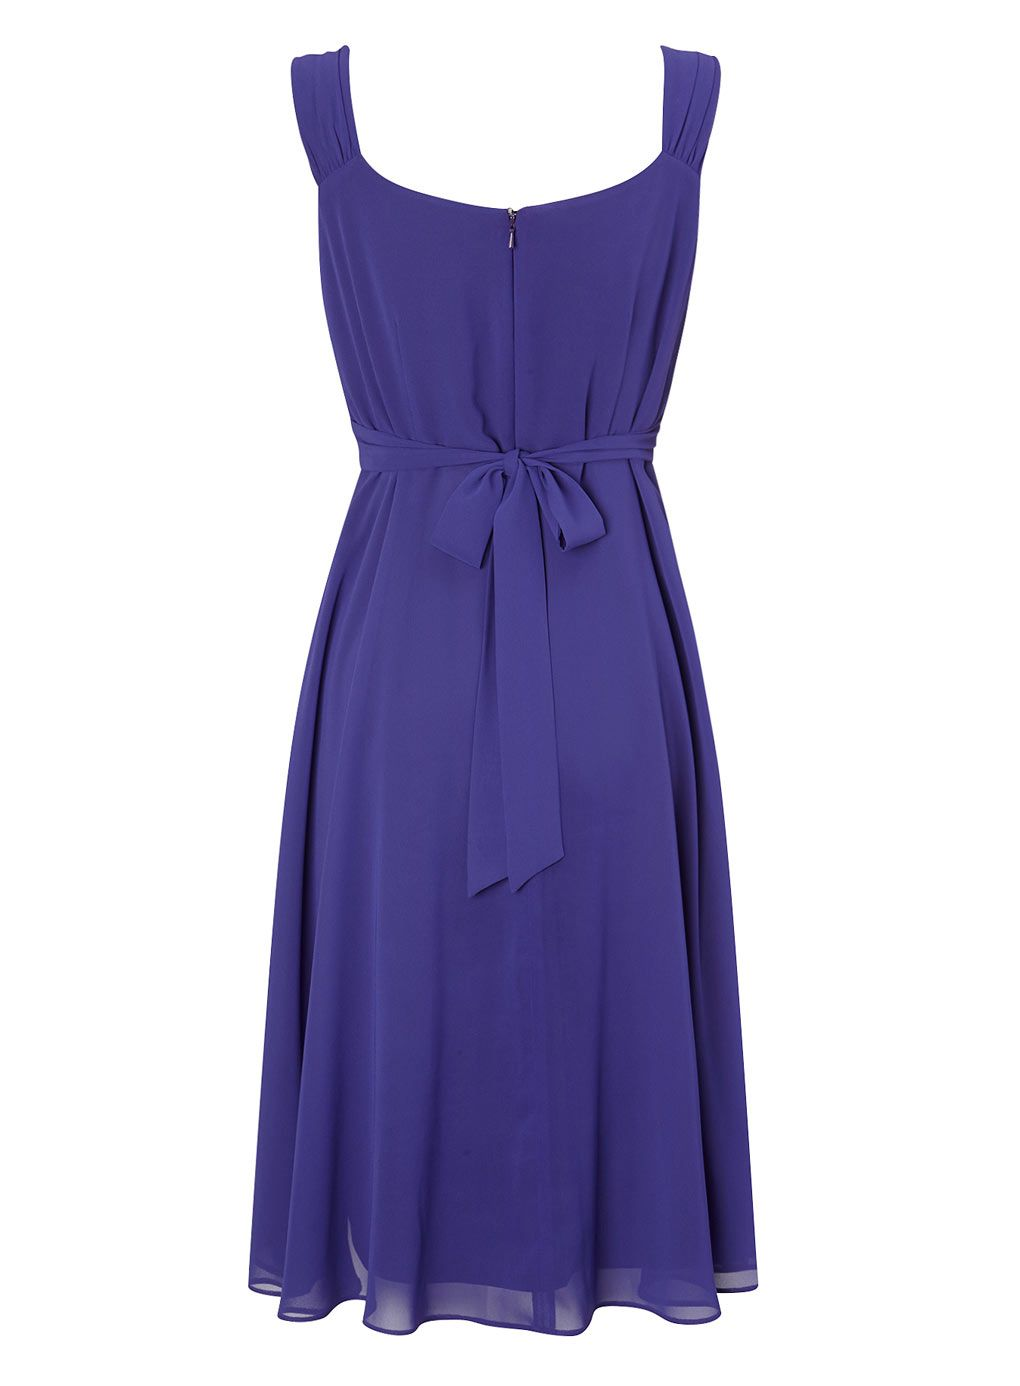 Blue Chiffon Embellished Dress - dresses - Women - BHS | Bridesmaid ...